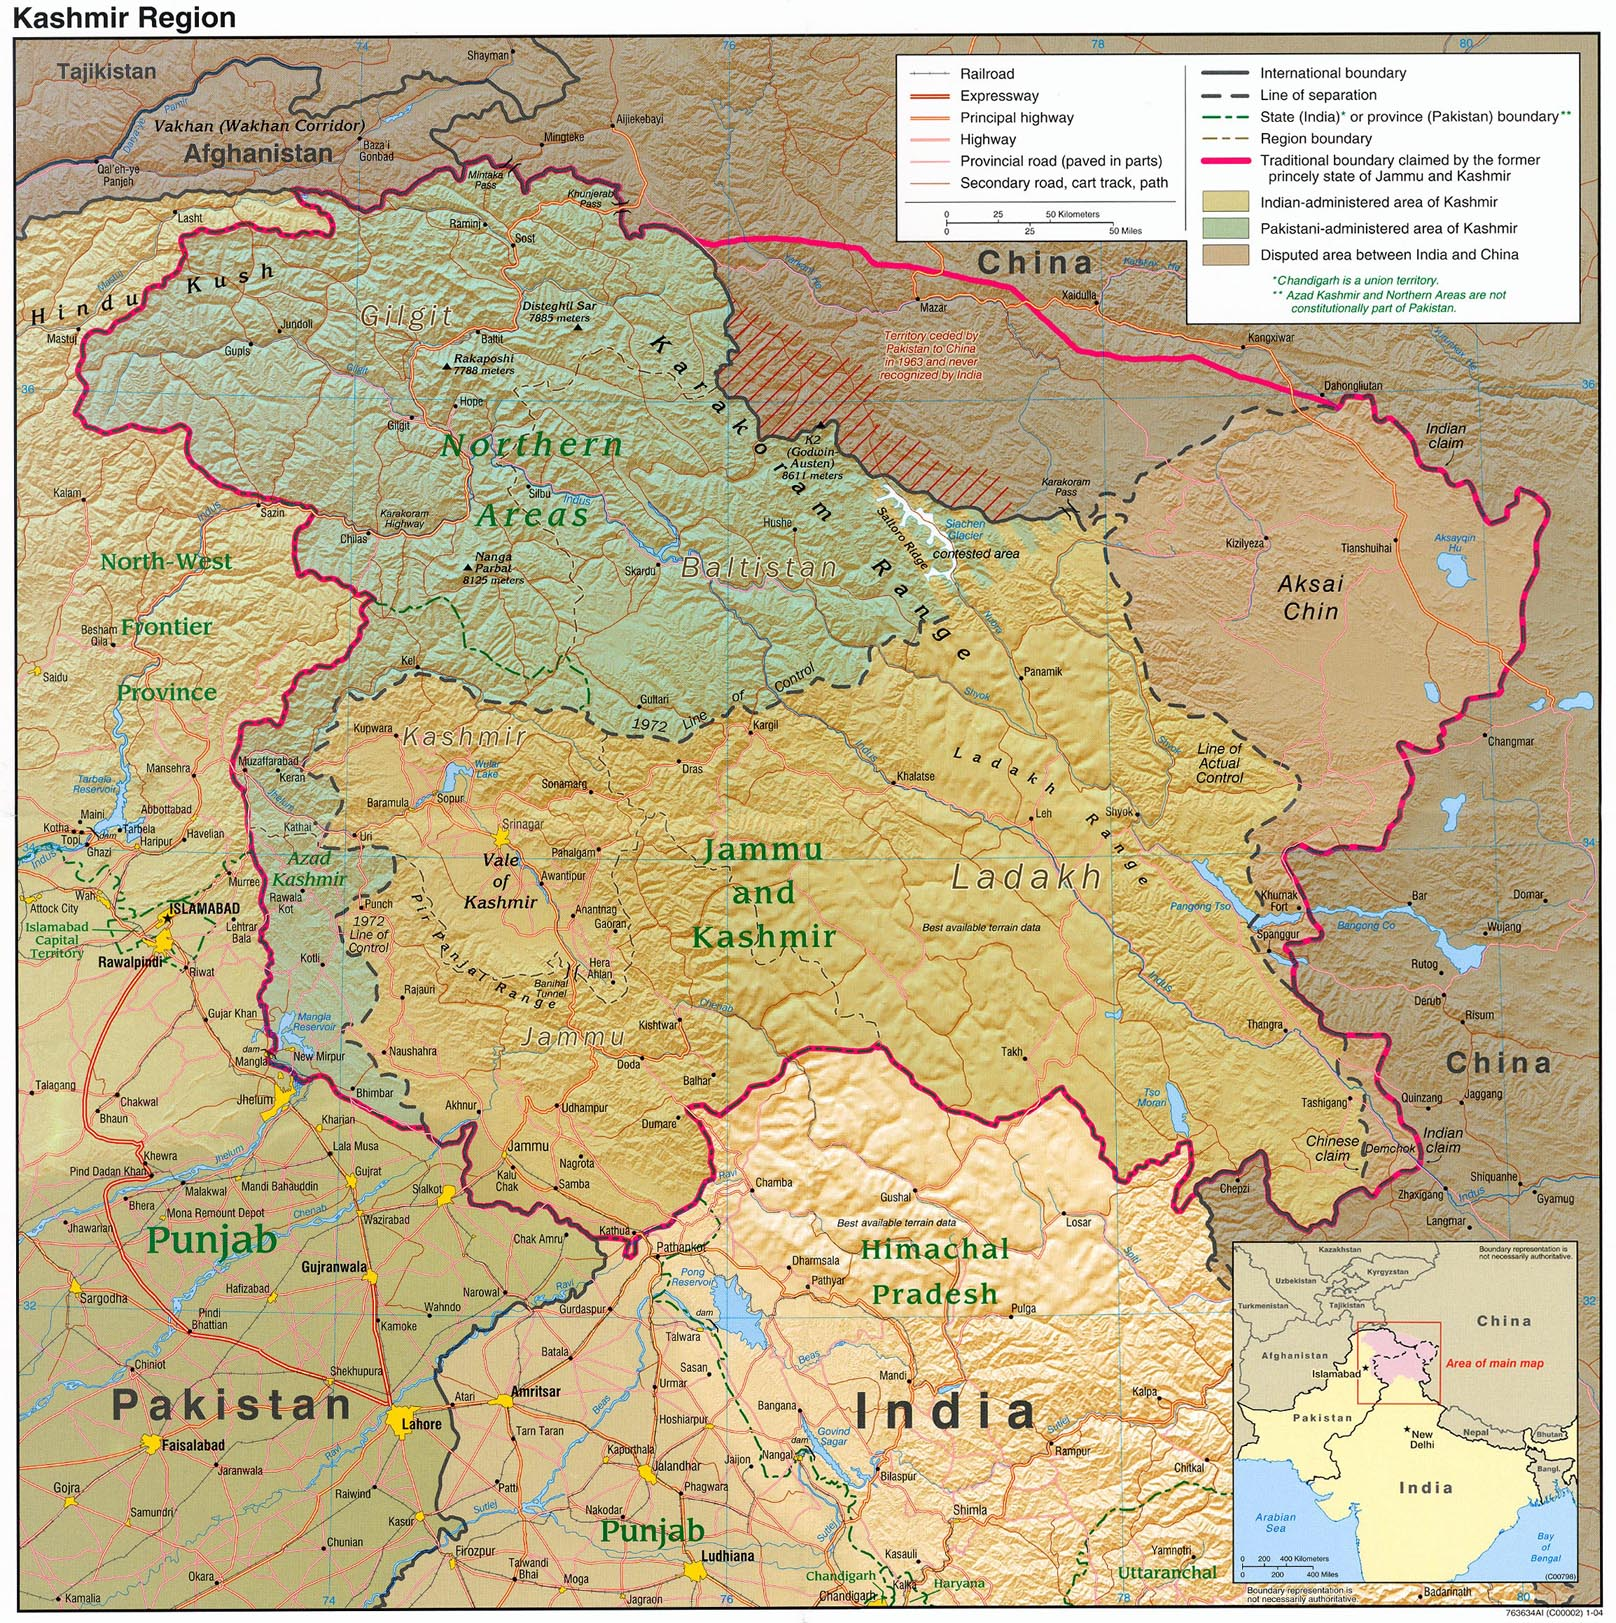 Kashmir maps perry castaeda map collection ut library online map collection gumiabroncs Gallery